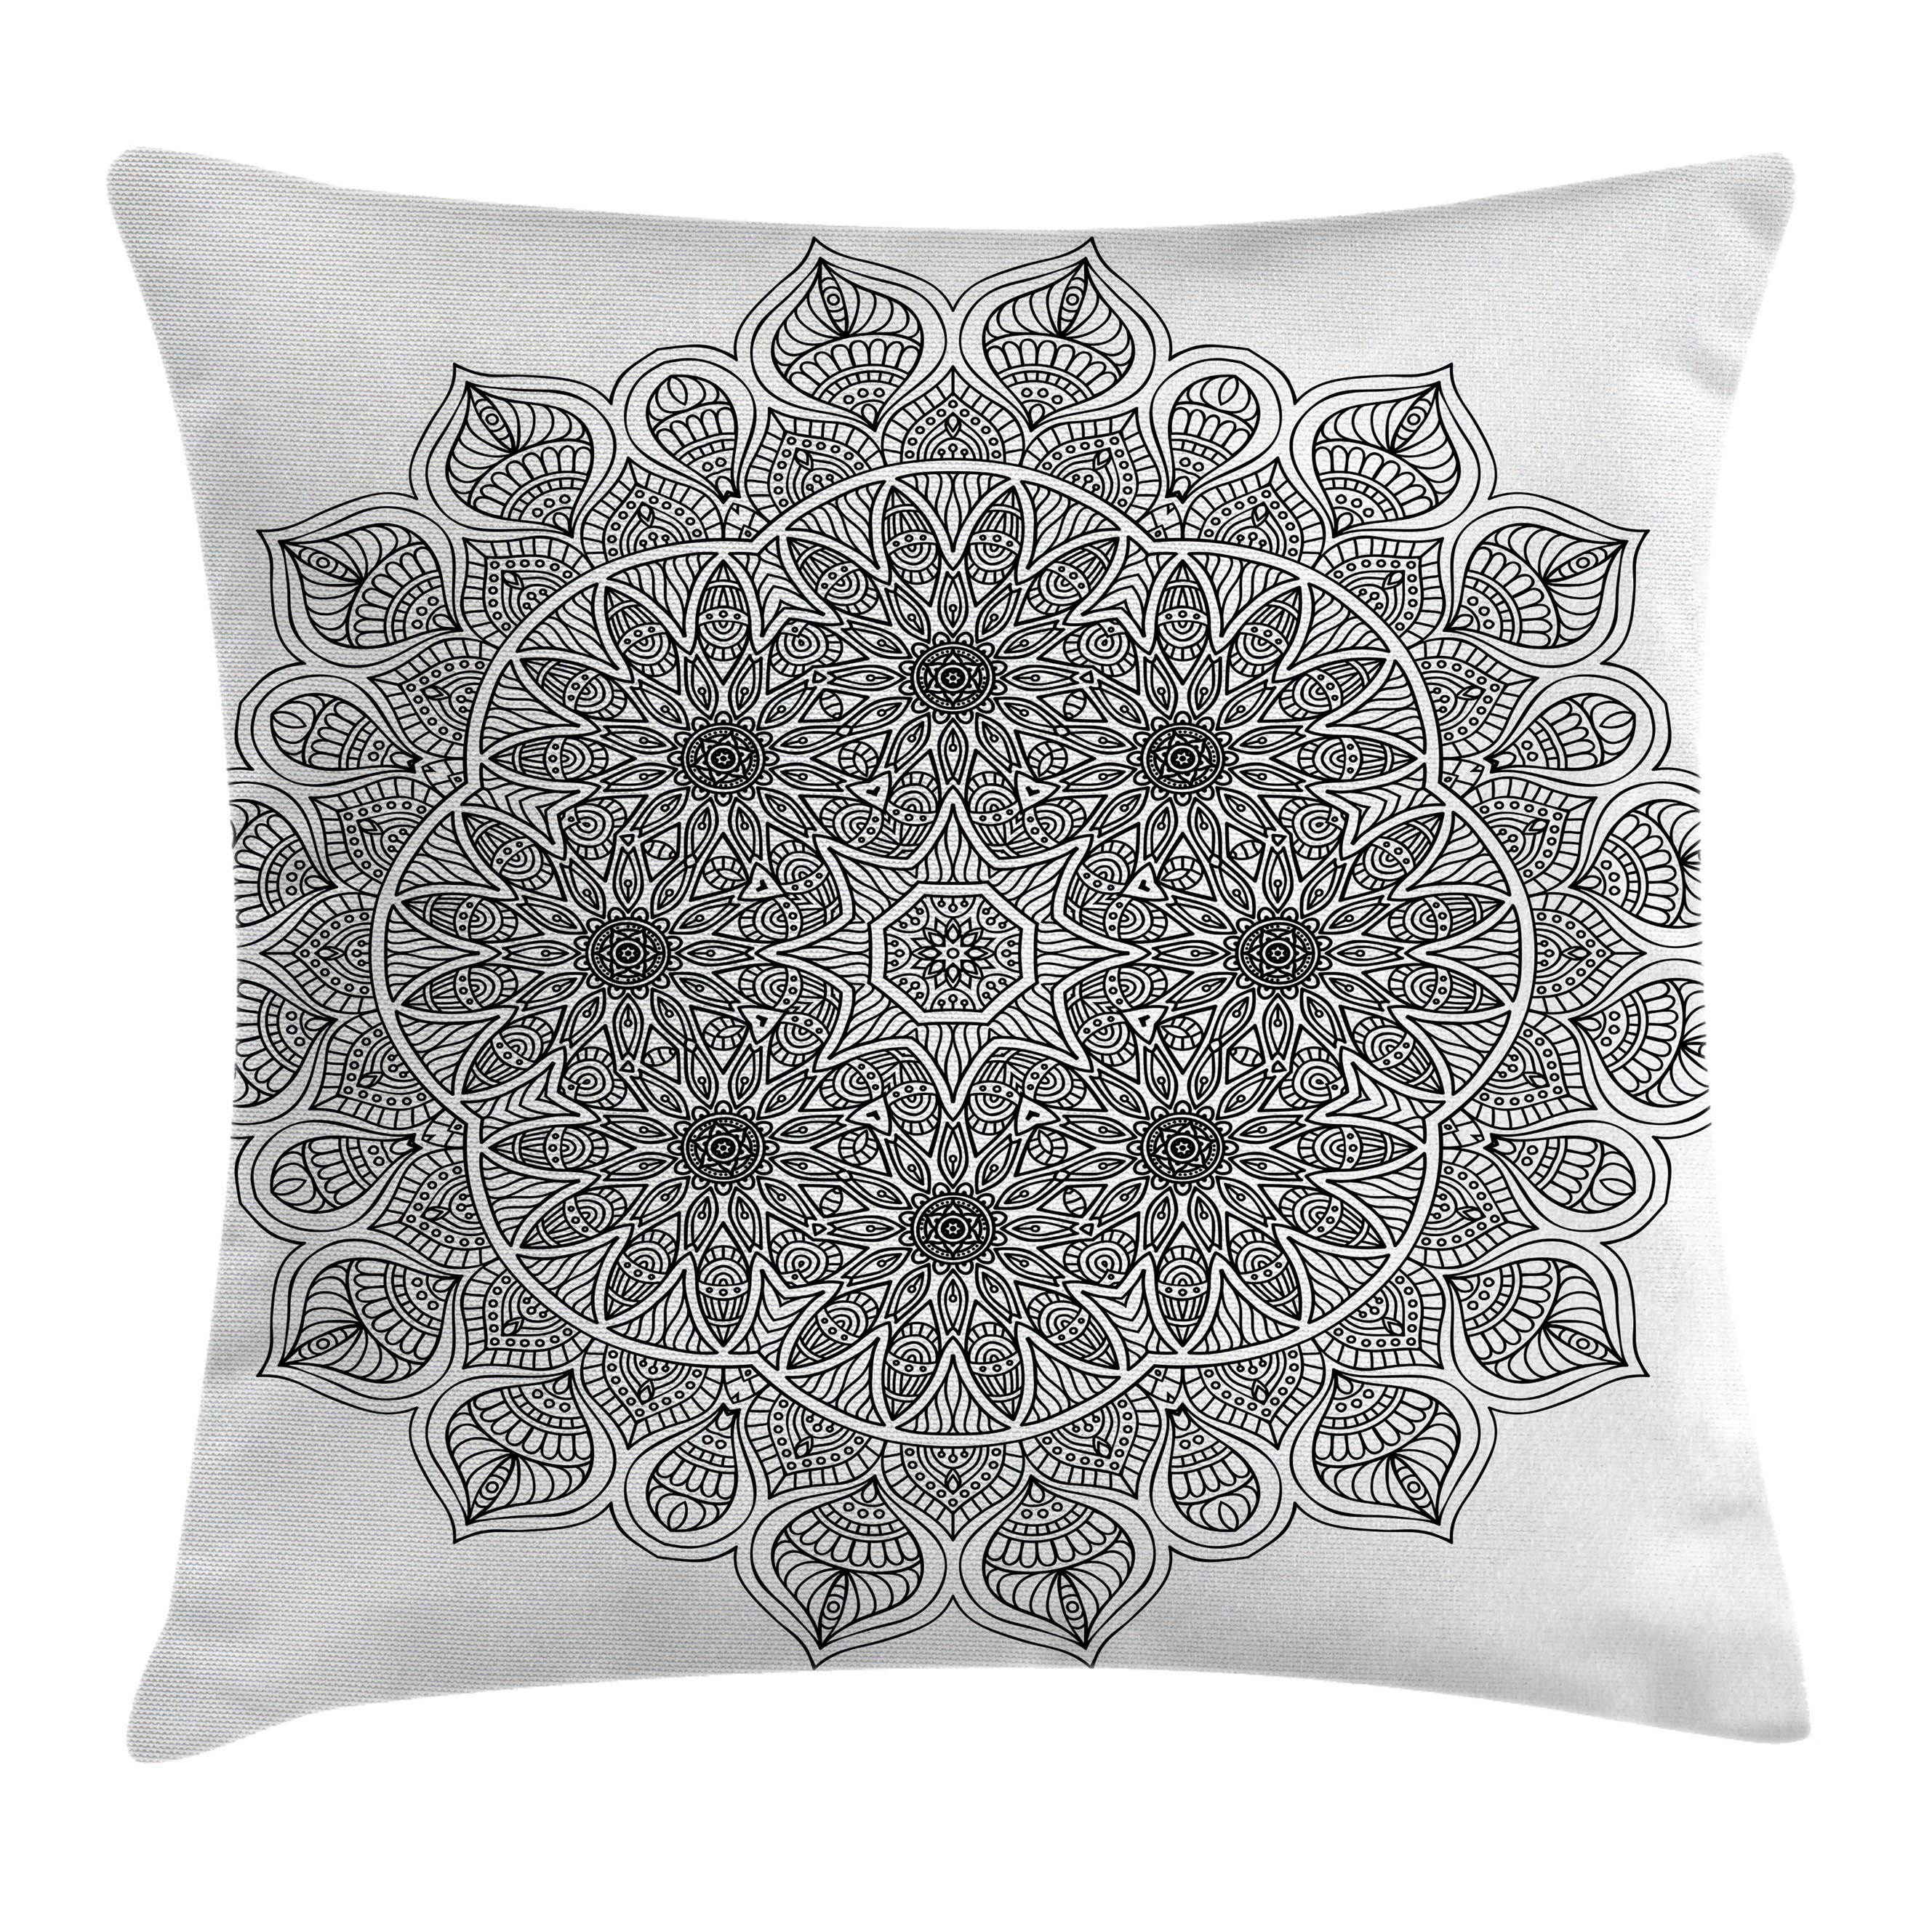 Mandala Decor Throw Pillow Cushion Cover, Monochrome Pattern Ancient Mystical Heritage Henna Cosmos Icon Artwork, Decorative Square Accent Pillow Case, 20 X 20 Inches, Black, by Ambesonne